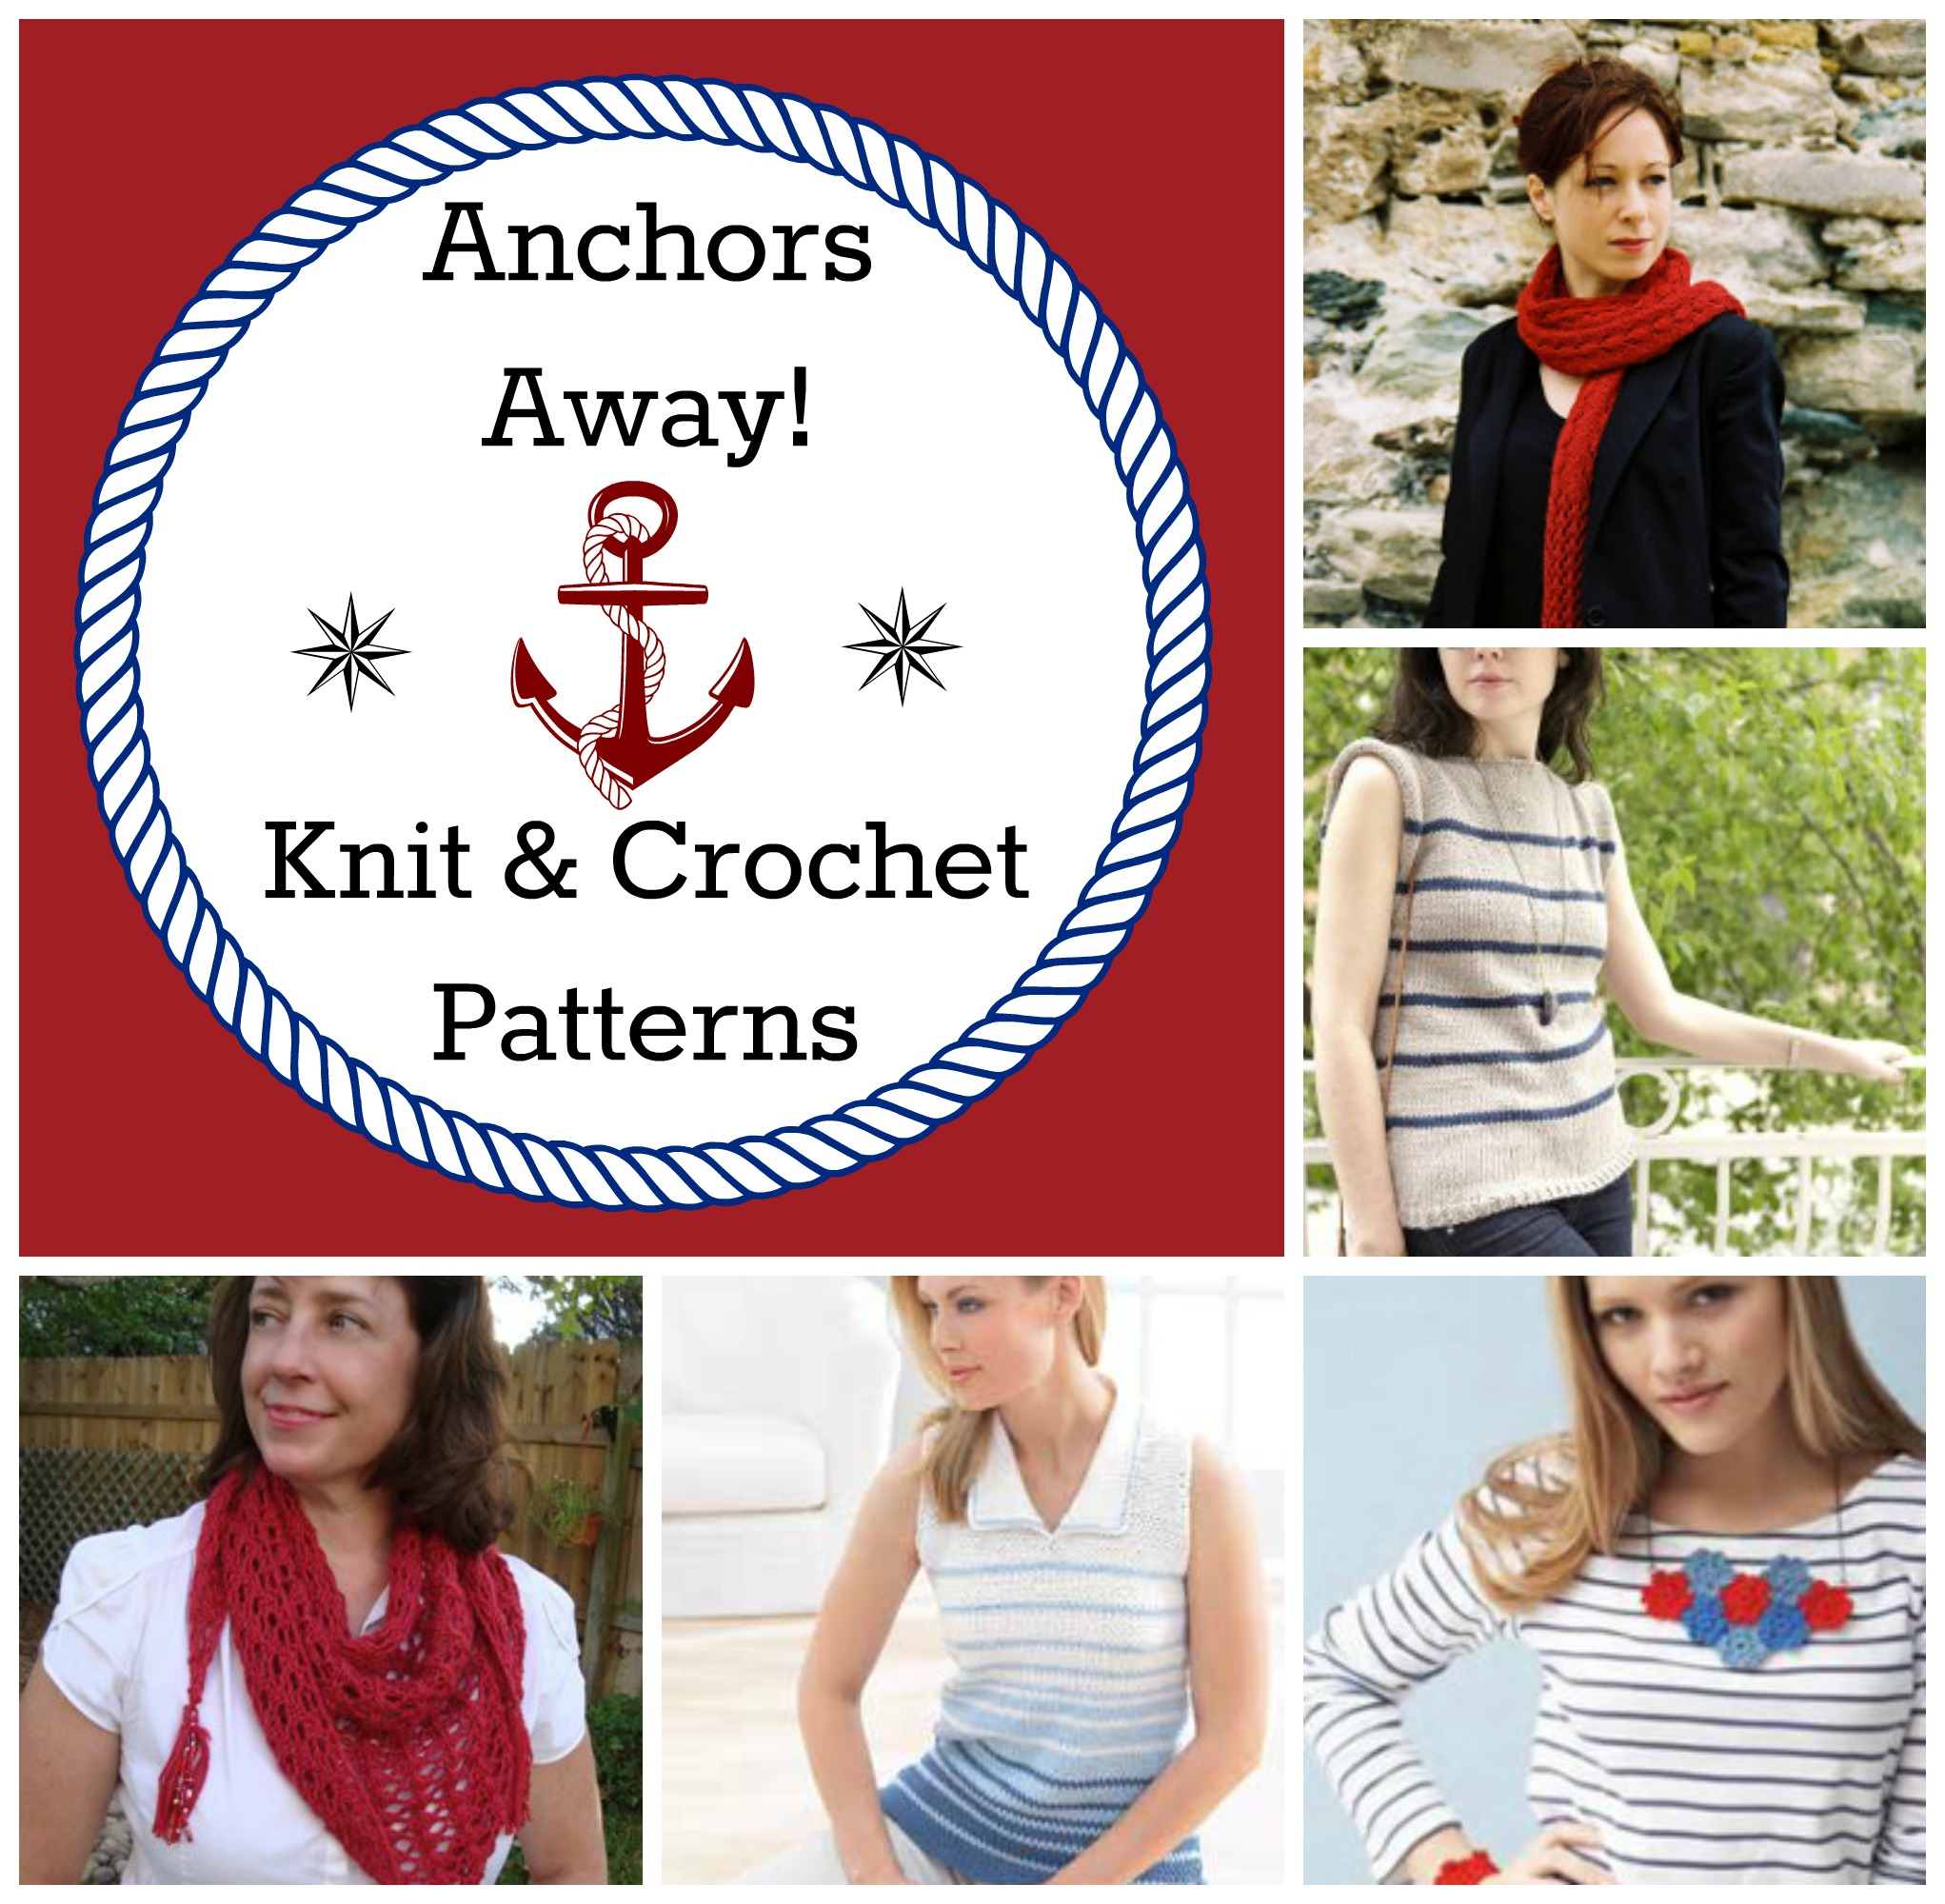 Anchors Away! 25 Nautical Patterns for All - Stitch and Unwind